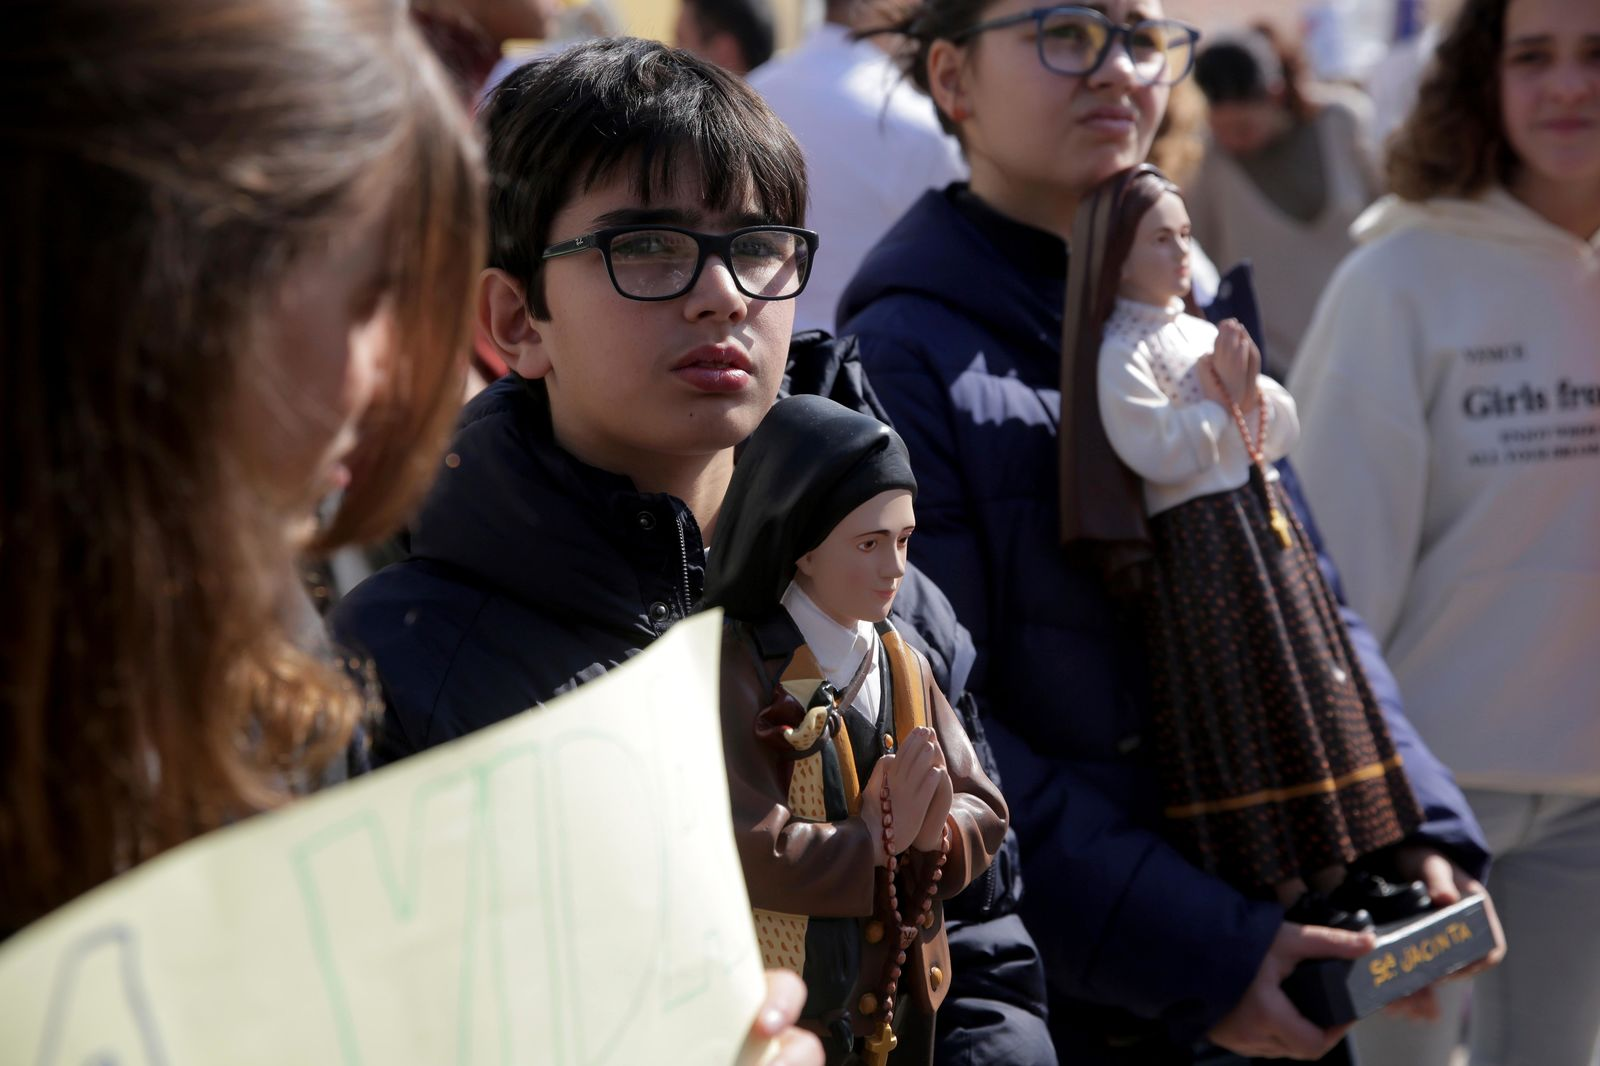 Demonstrators, some of them holding statues of saints, protest outside the Portuguese parliament in Lisbon, Thursday, Feb. 20, 2020. (AP Photo/Armando Franca)